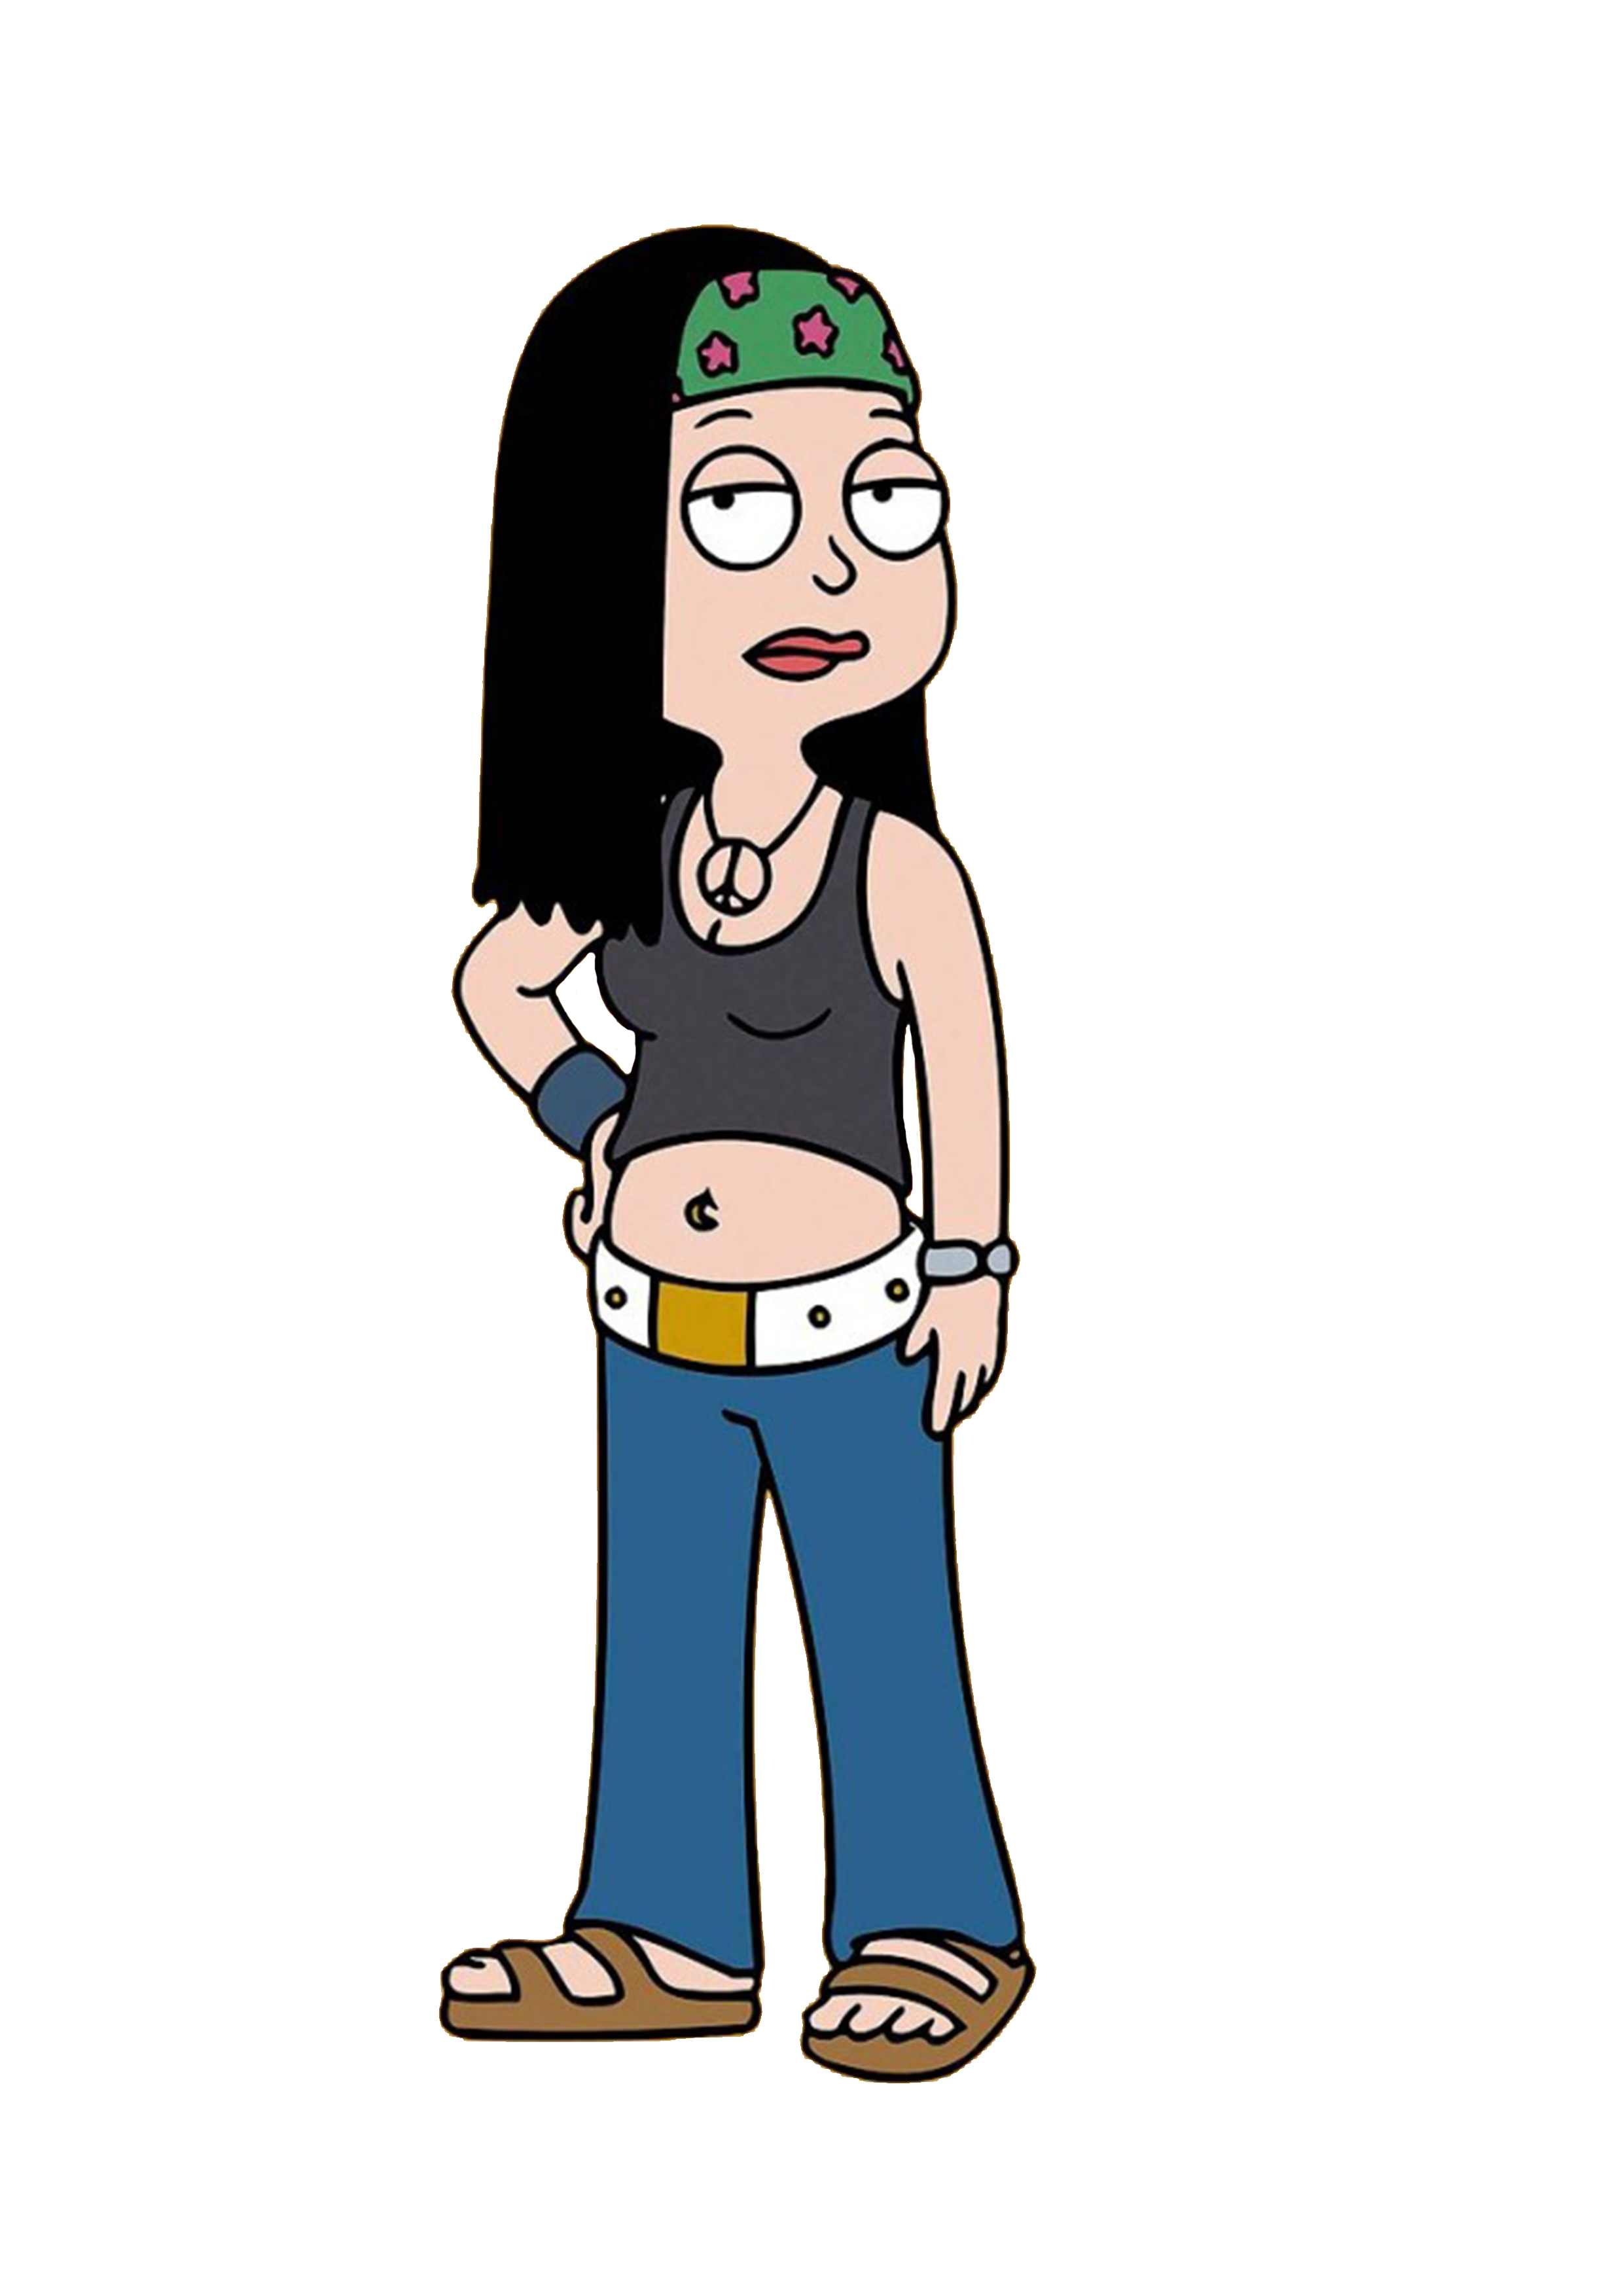 American dad roger png. Stan smith hayley steve